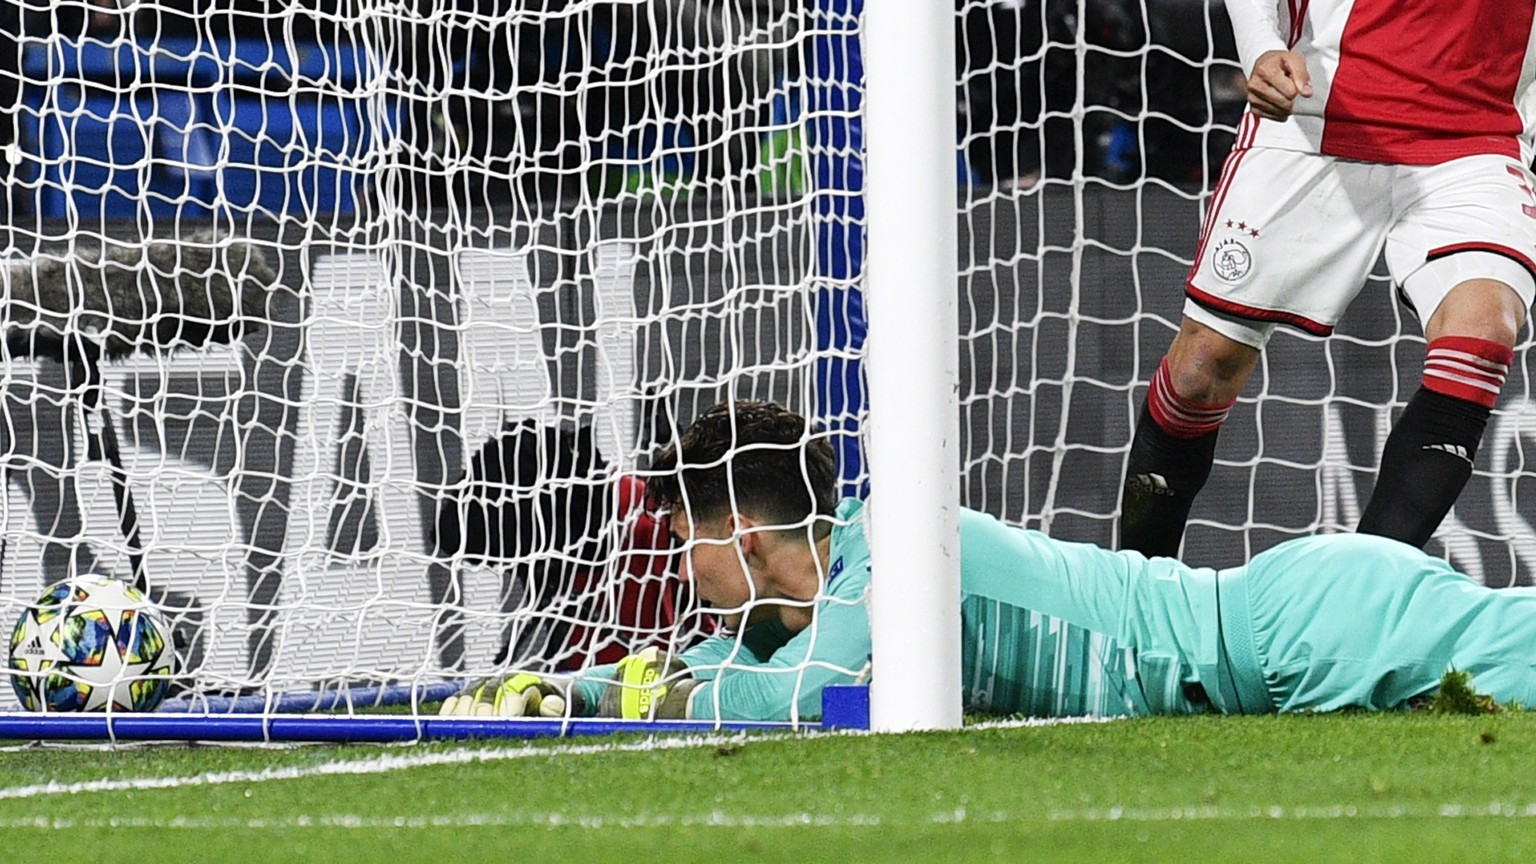 epa07975073 Goalkeeper Kepa of Chelsea is beaten as Ajax score their third goal during the UEFA Champions League Group H match between Chelsea FC and Ajax Amsterdam in London, Britain, 05 November 2019.  EPA/NEIL HALL